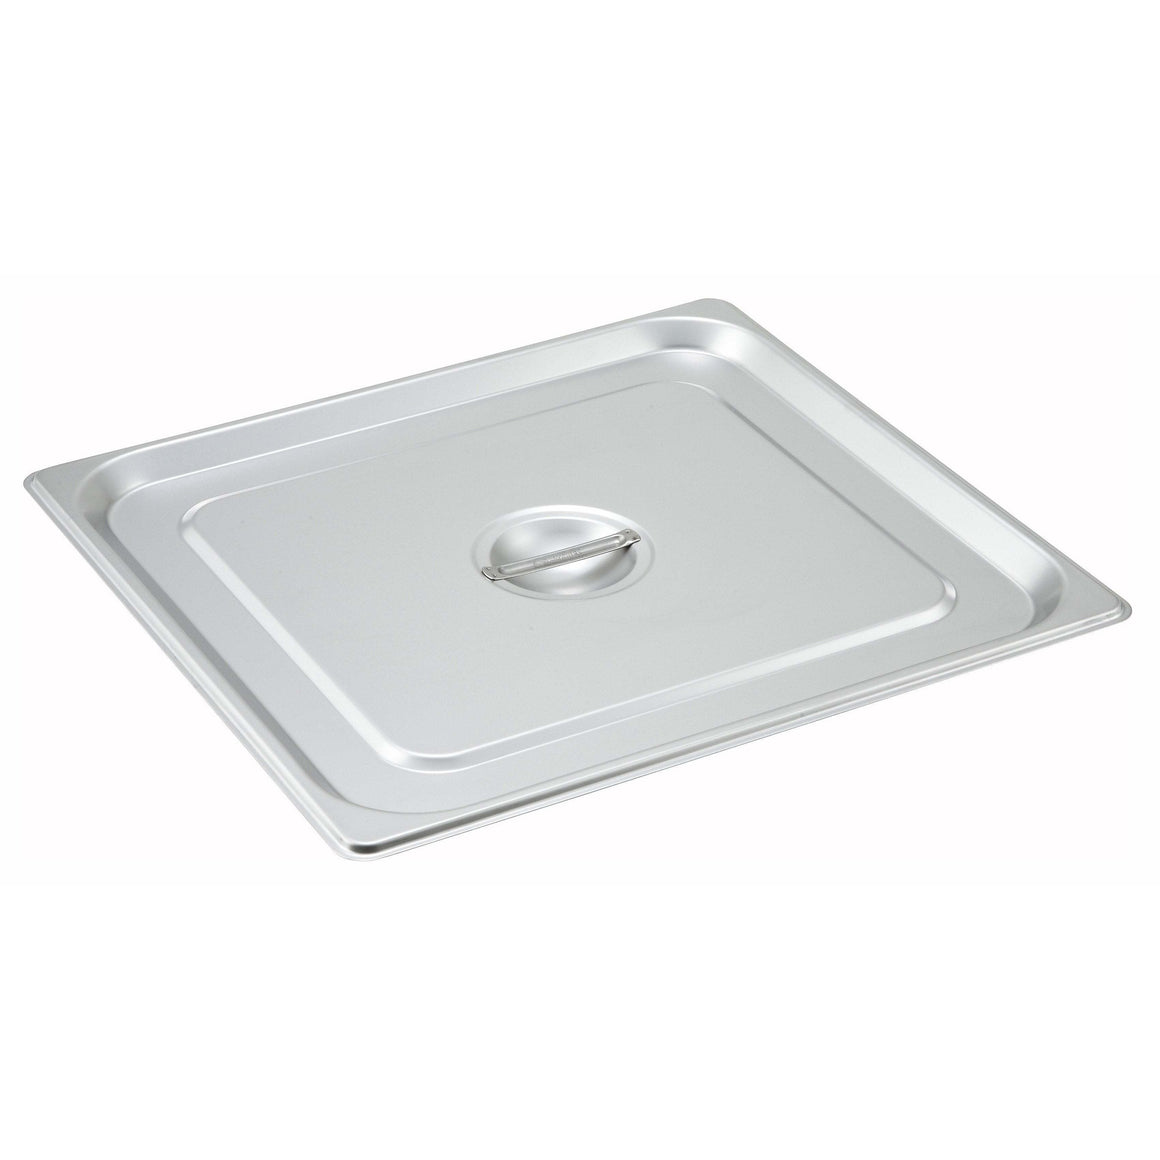 Winco - SPSCTT - Stainless Steel Steam Pan Cover, 2/3 Size, Solid - Steam Table